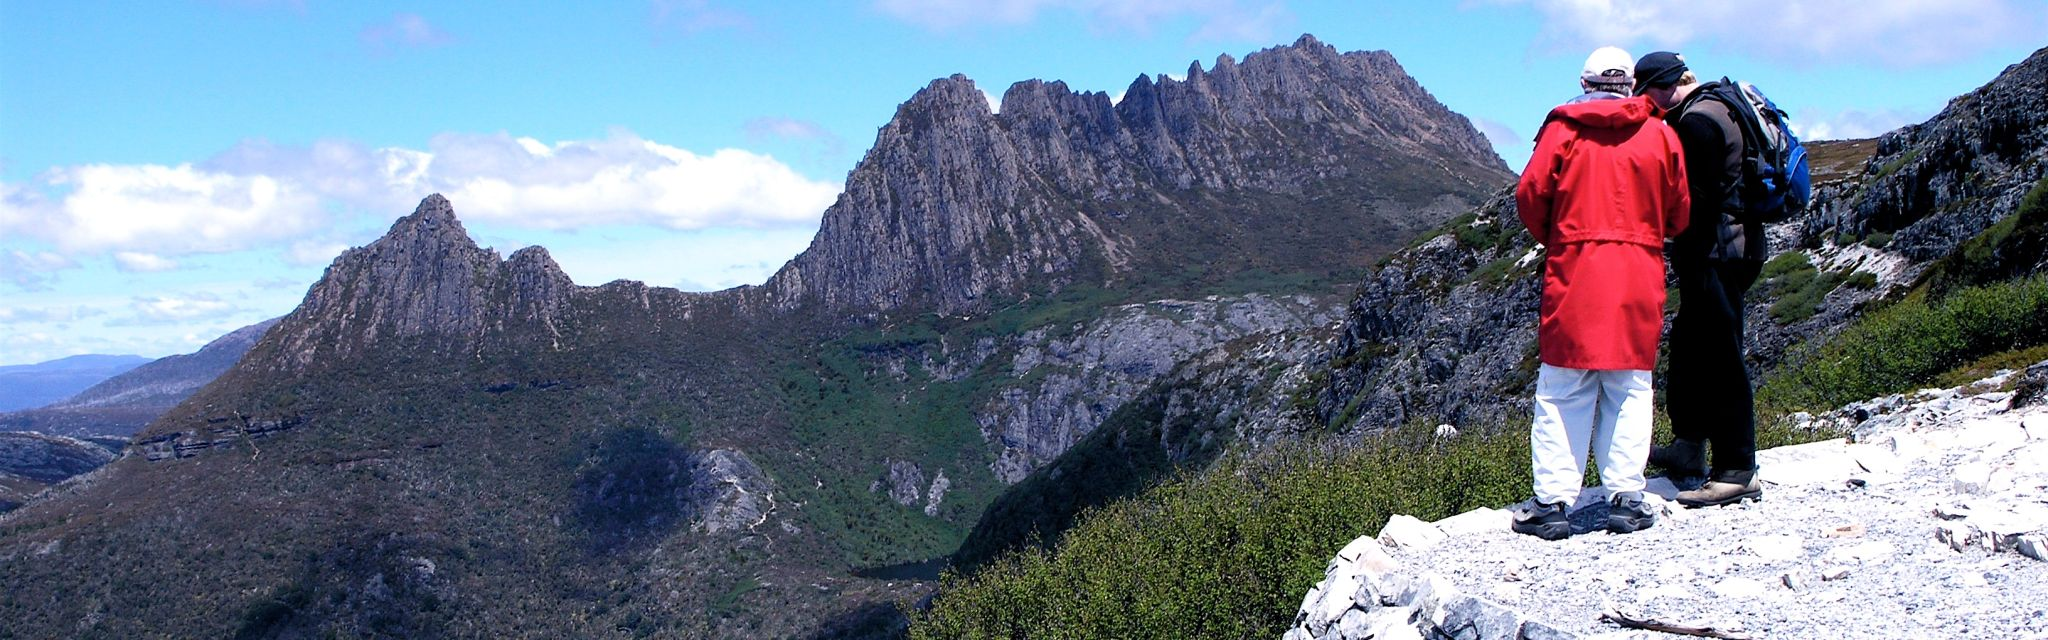 Cradle Mountain from Marion's Lookout on Tasmania National Parks tour